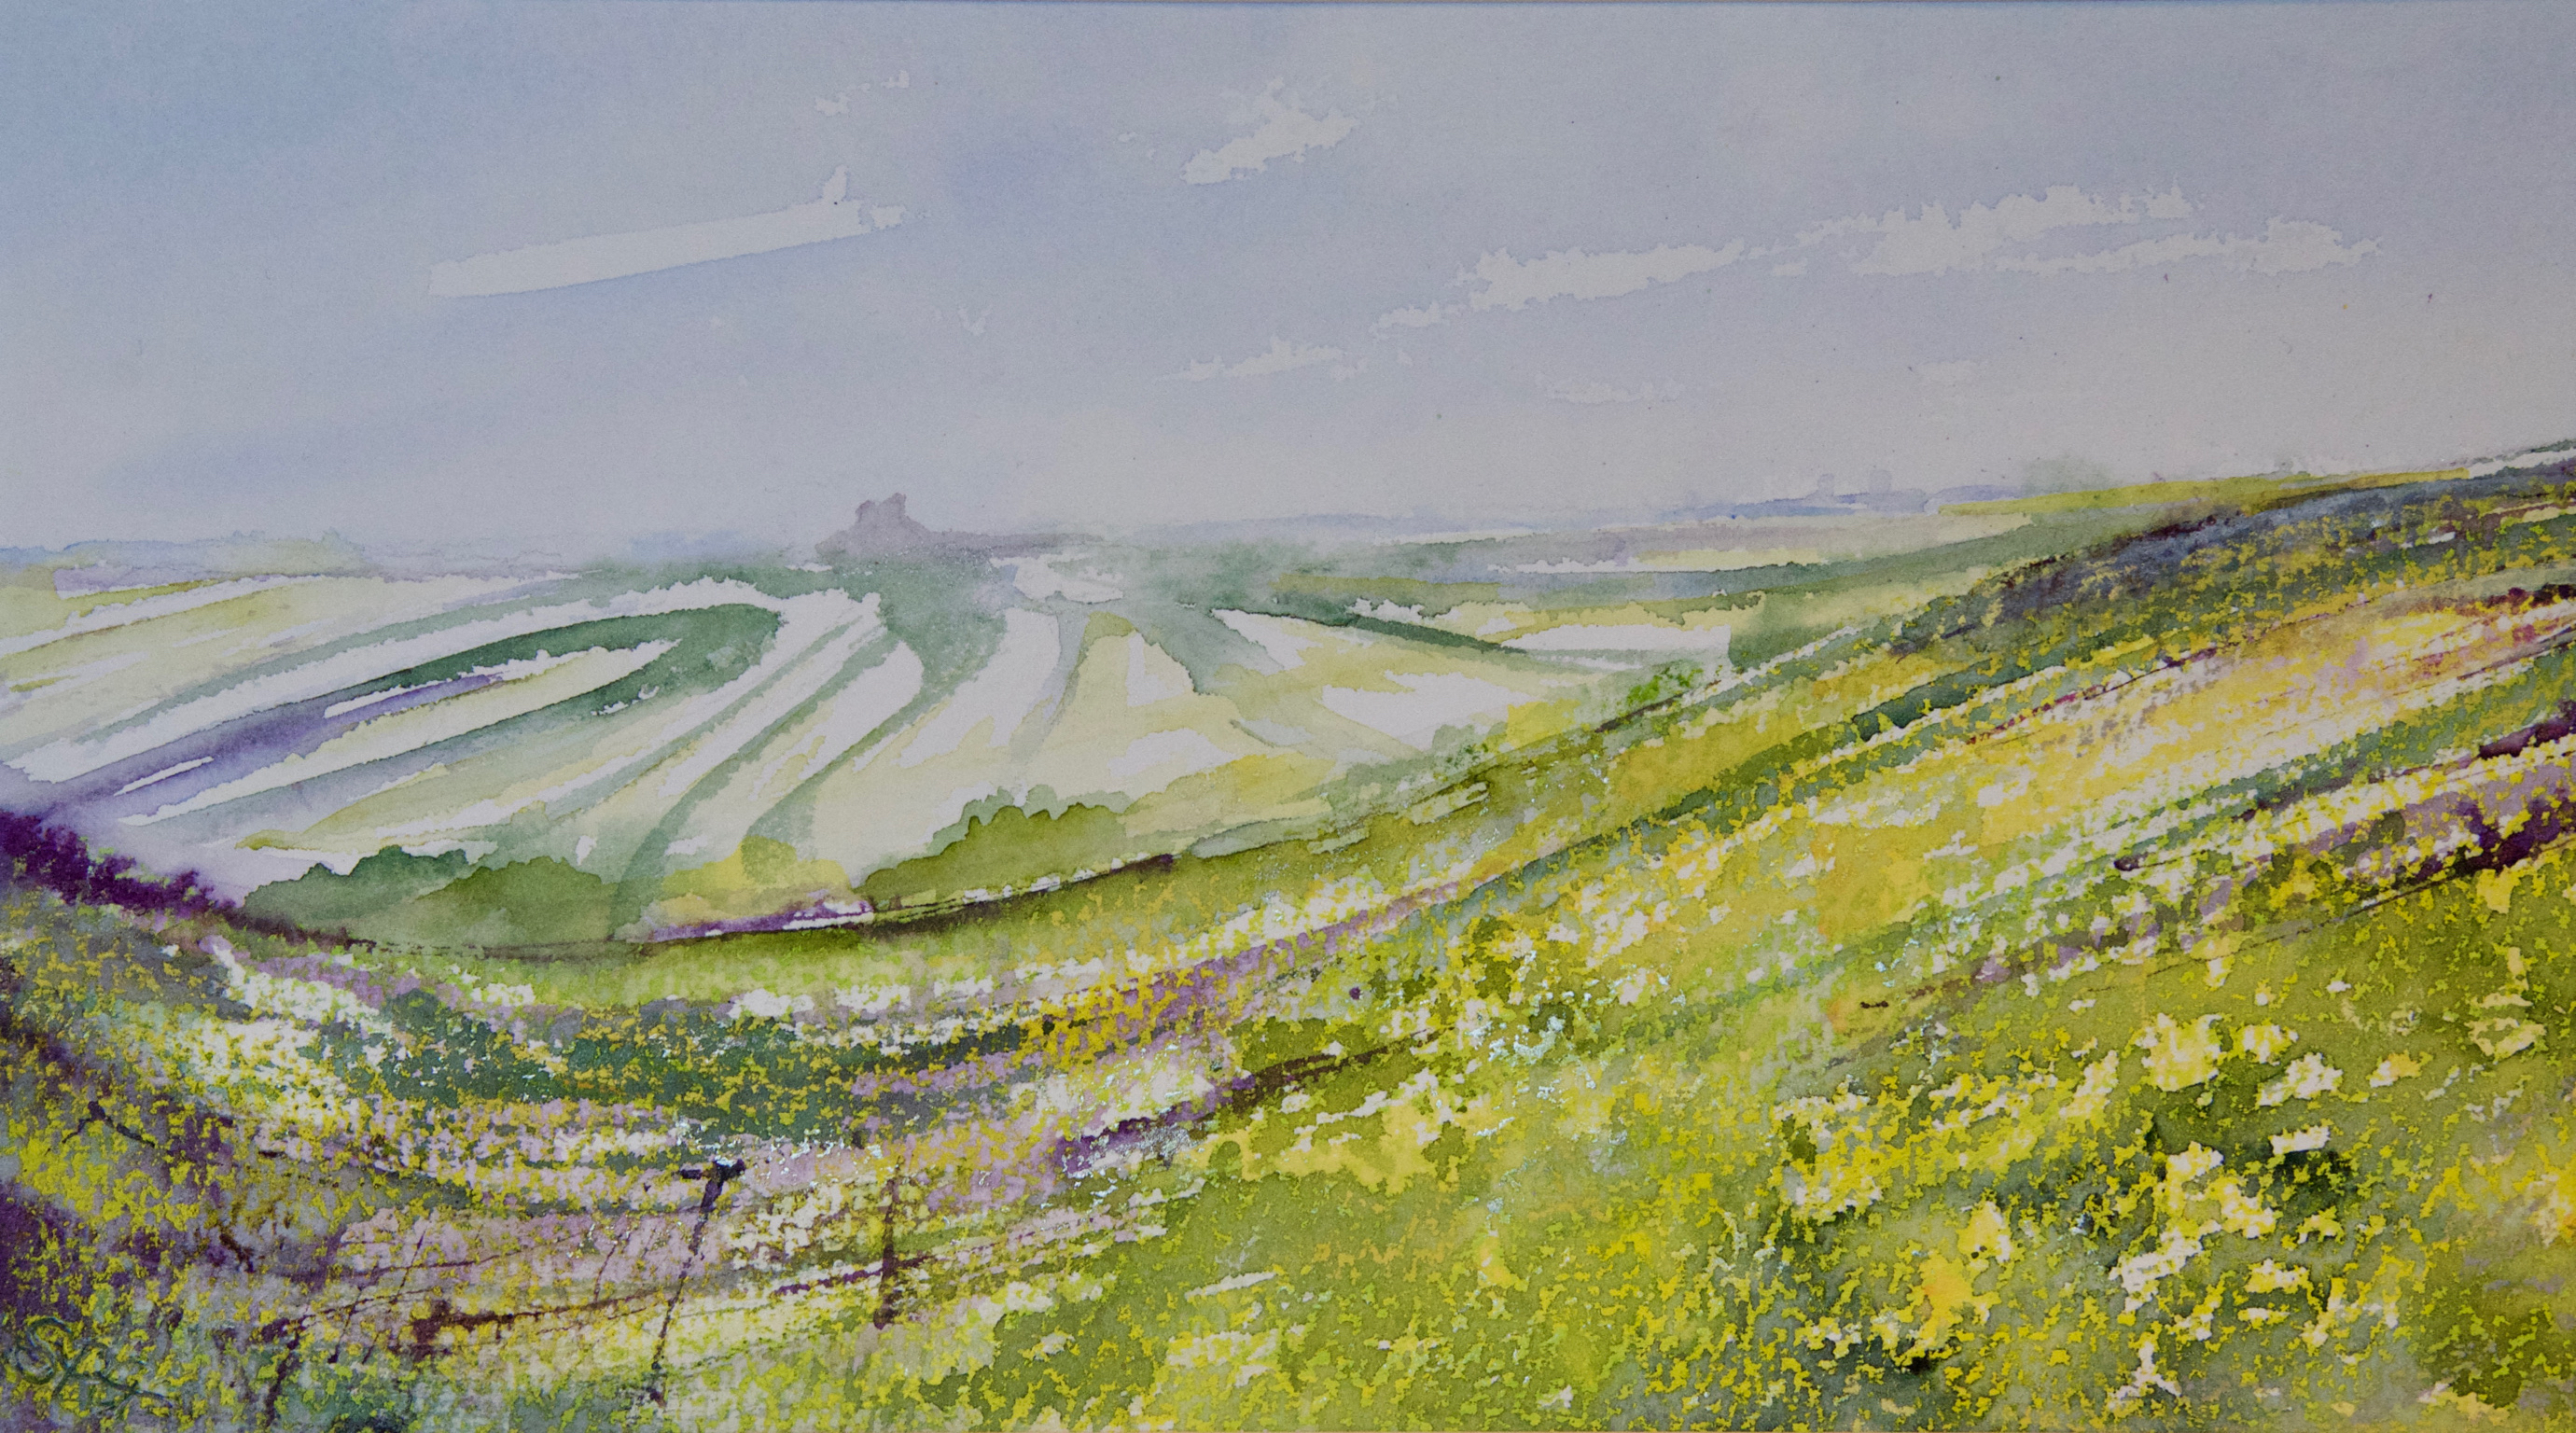 Standing in the Cowslips on Wittenham Clumps